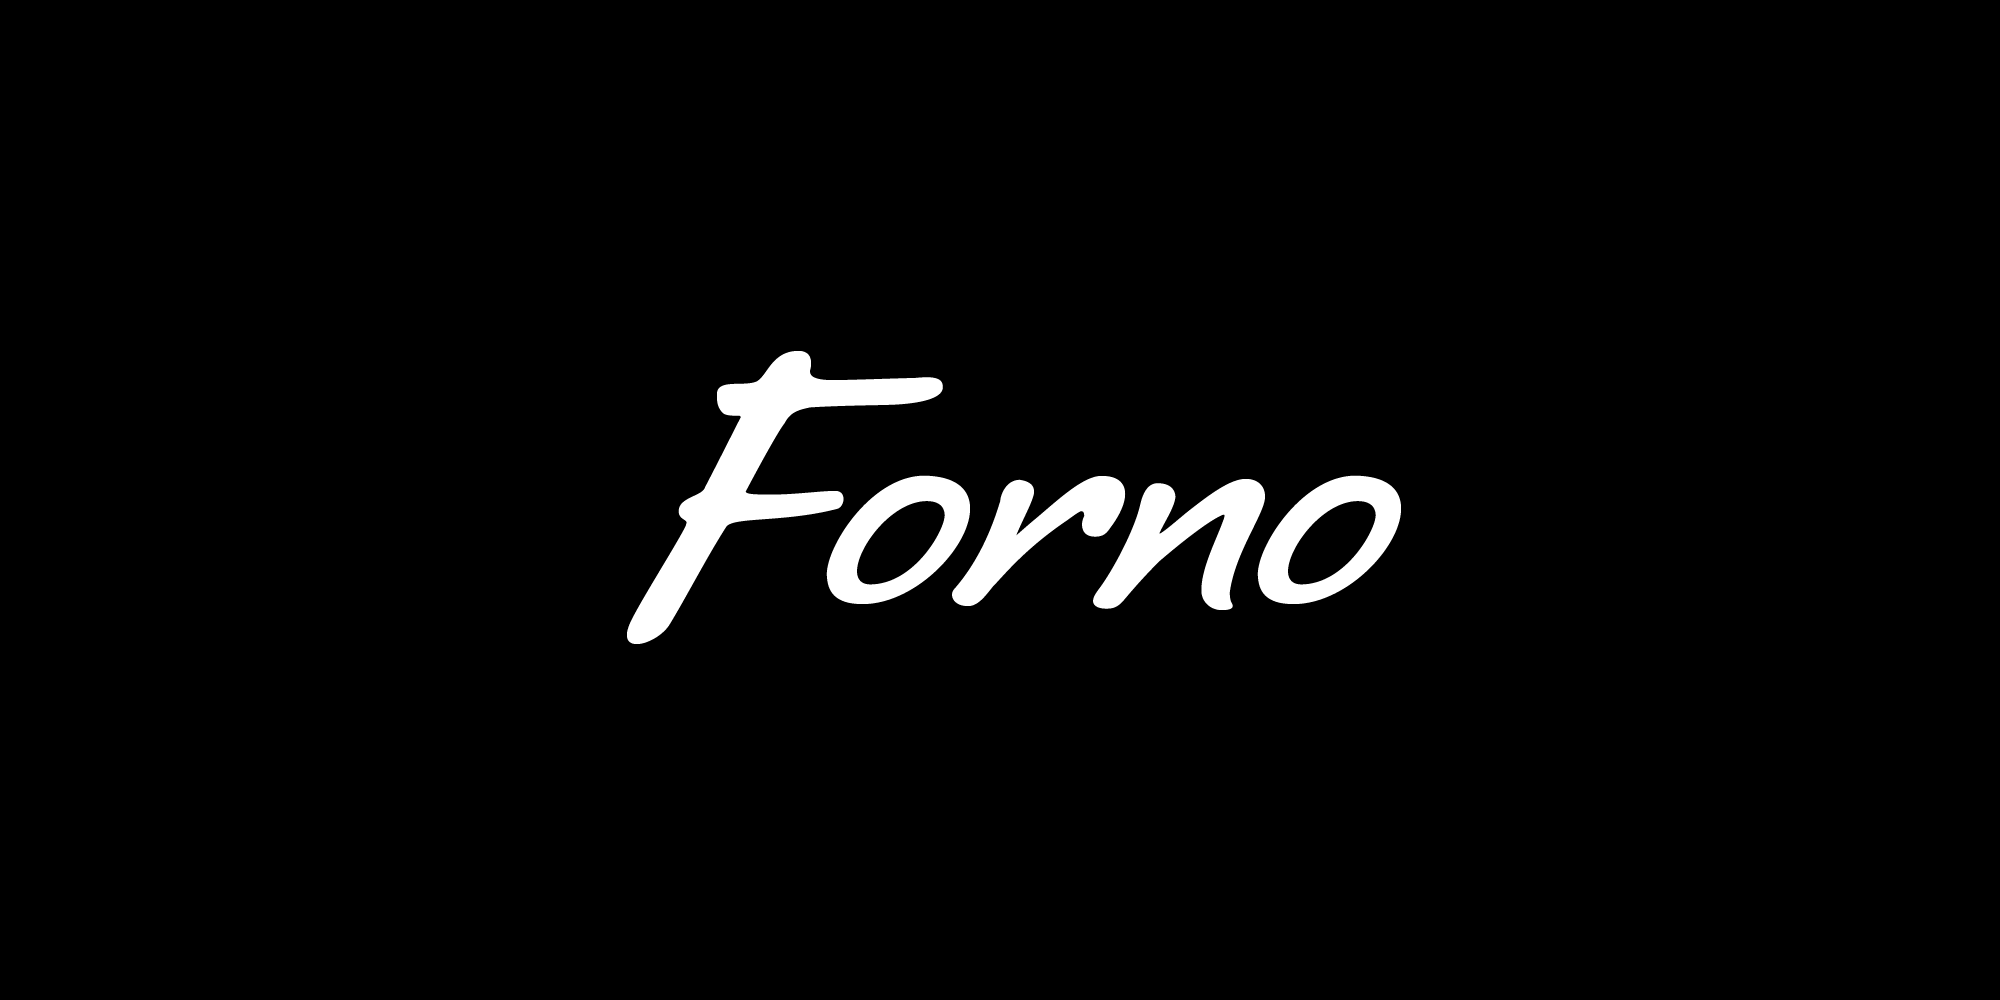 Forno font nameplate